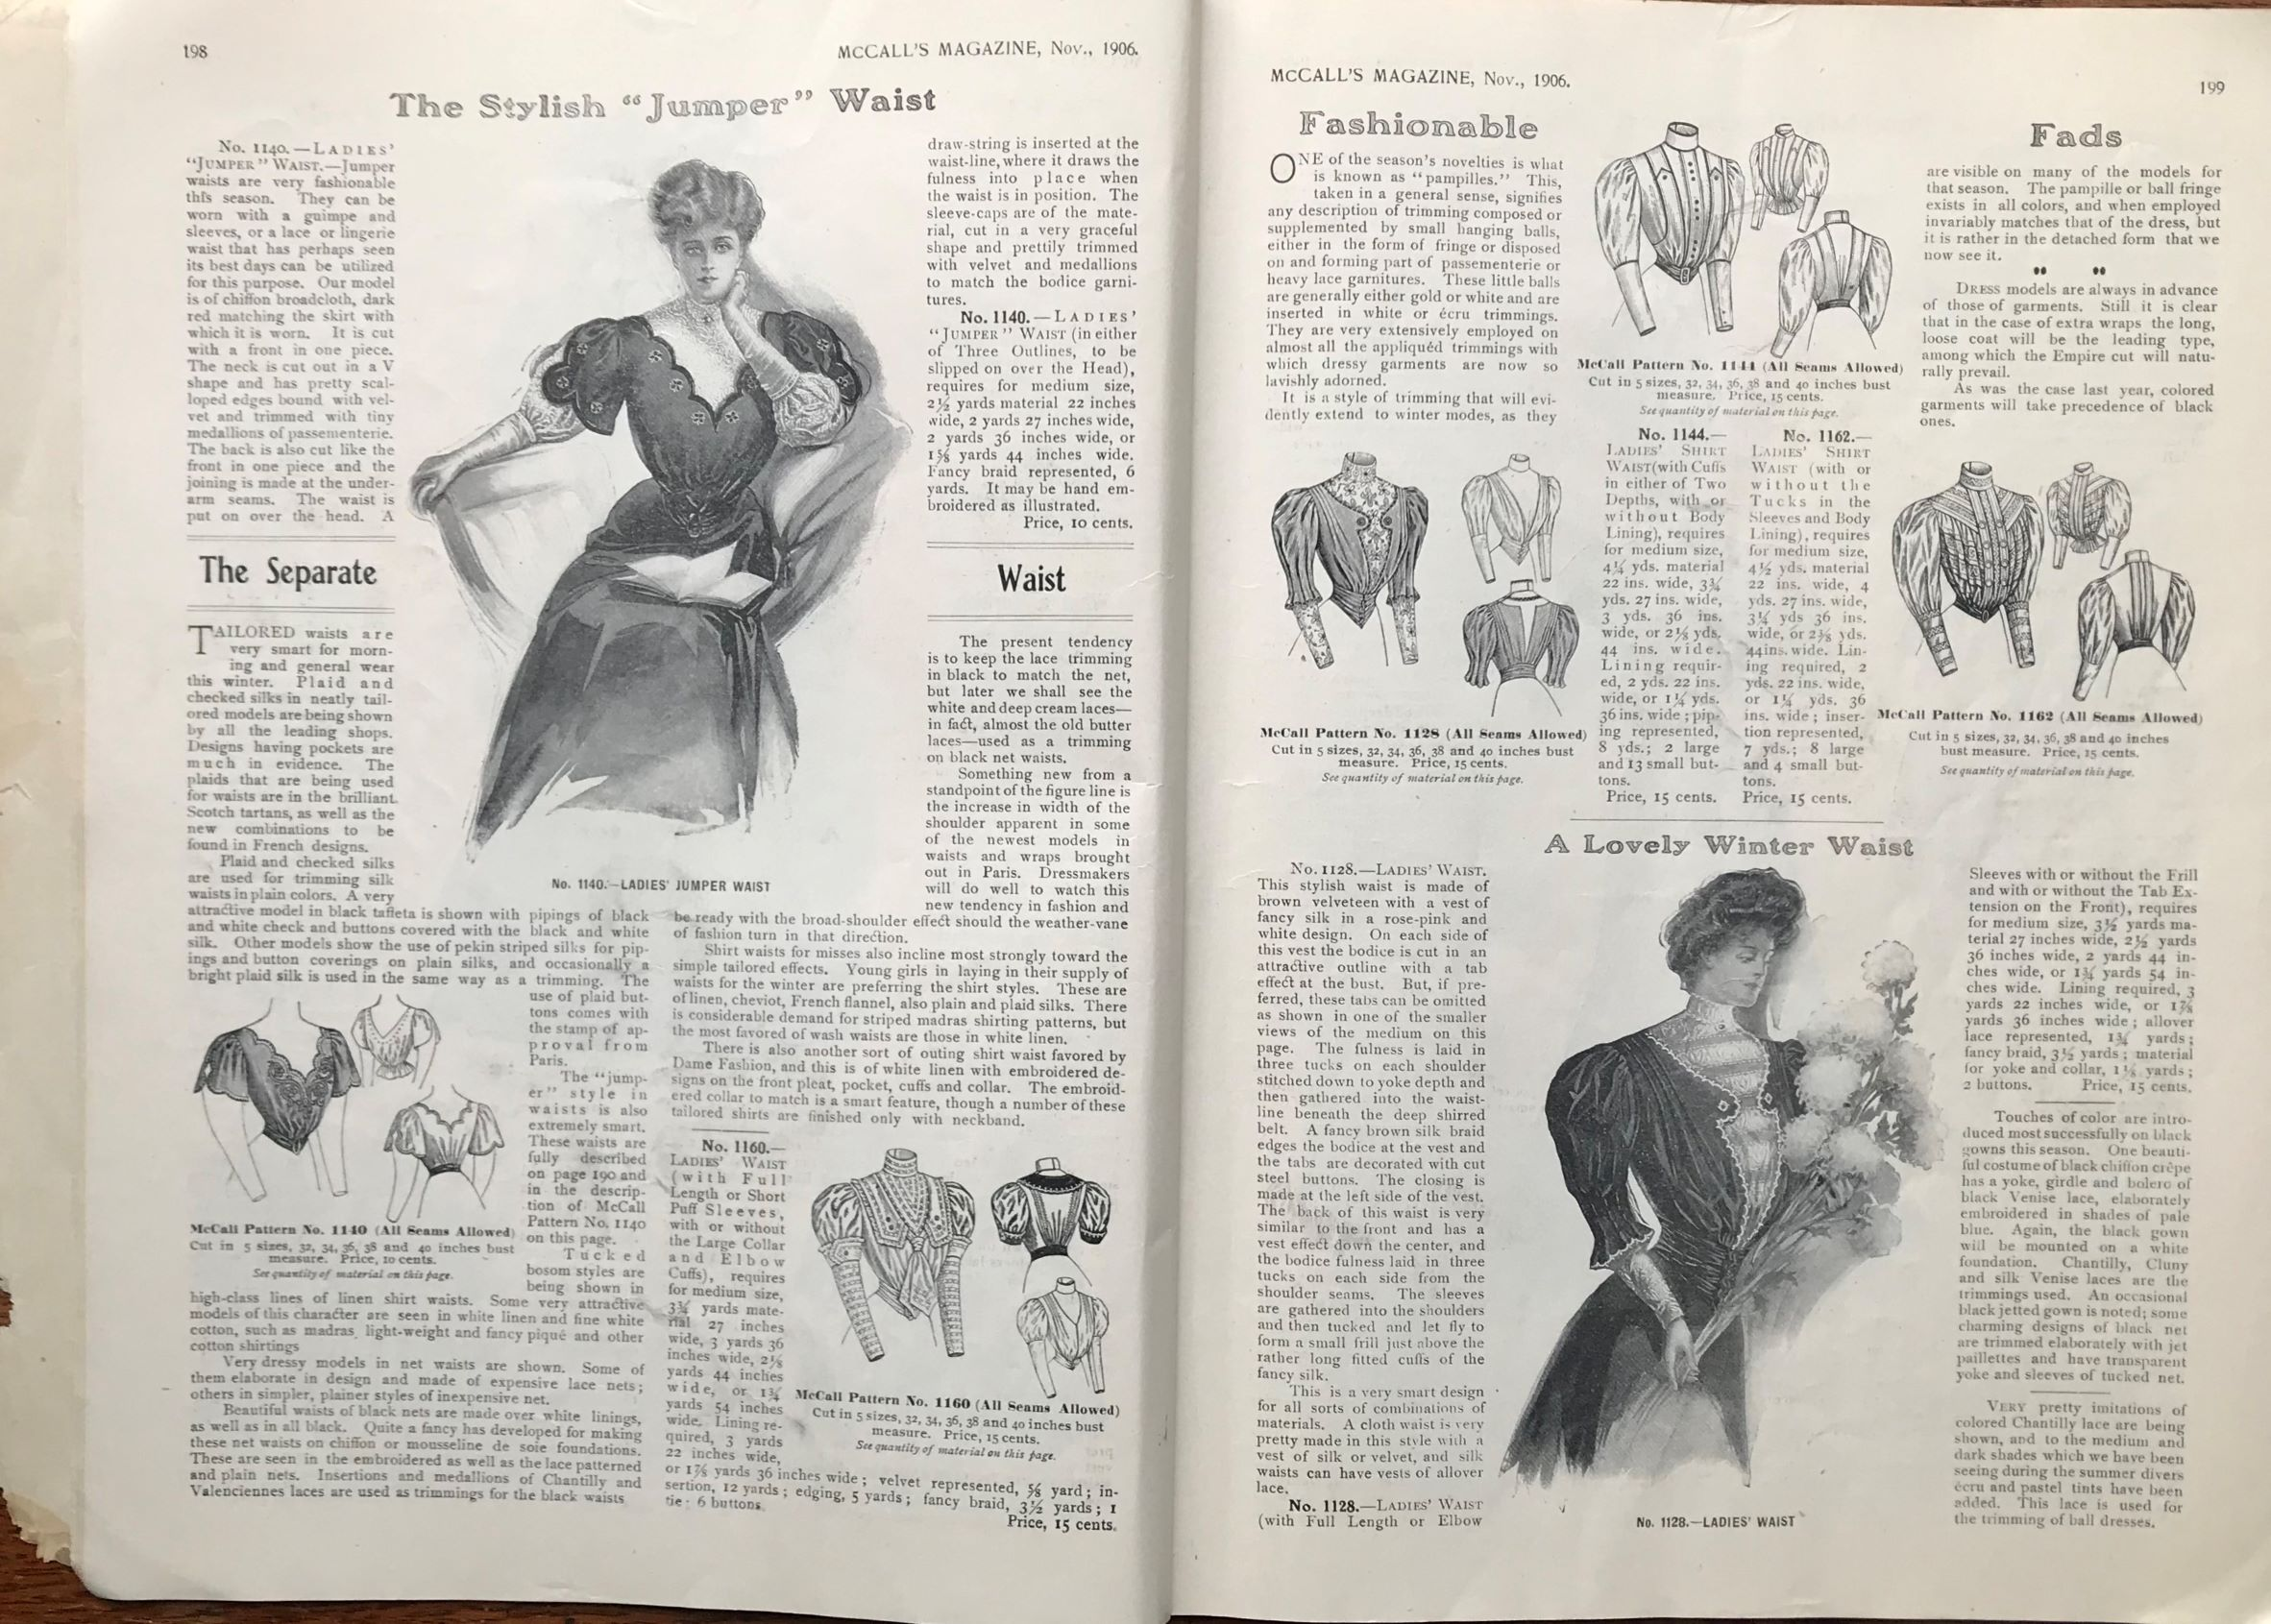 1906 November McCall's; The Stylish Jumper Waist